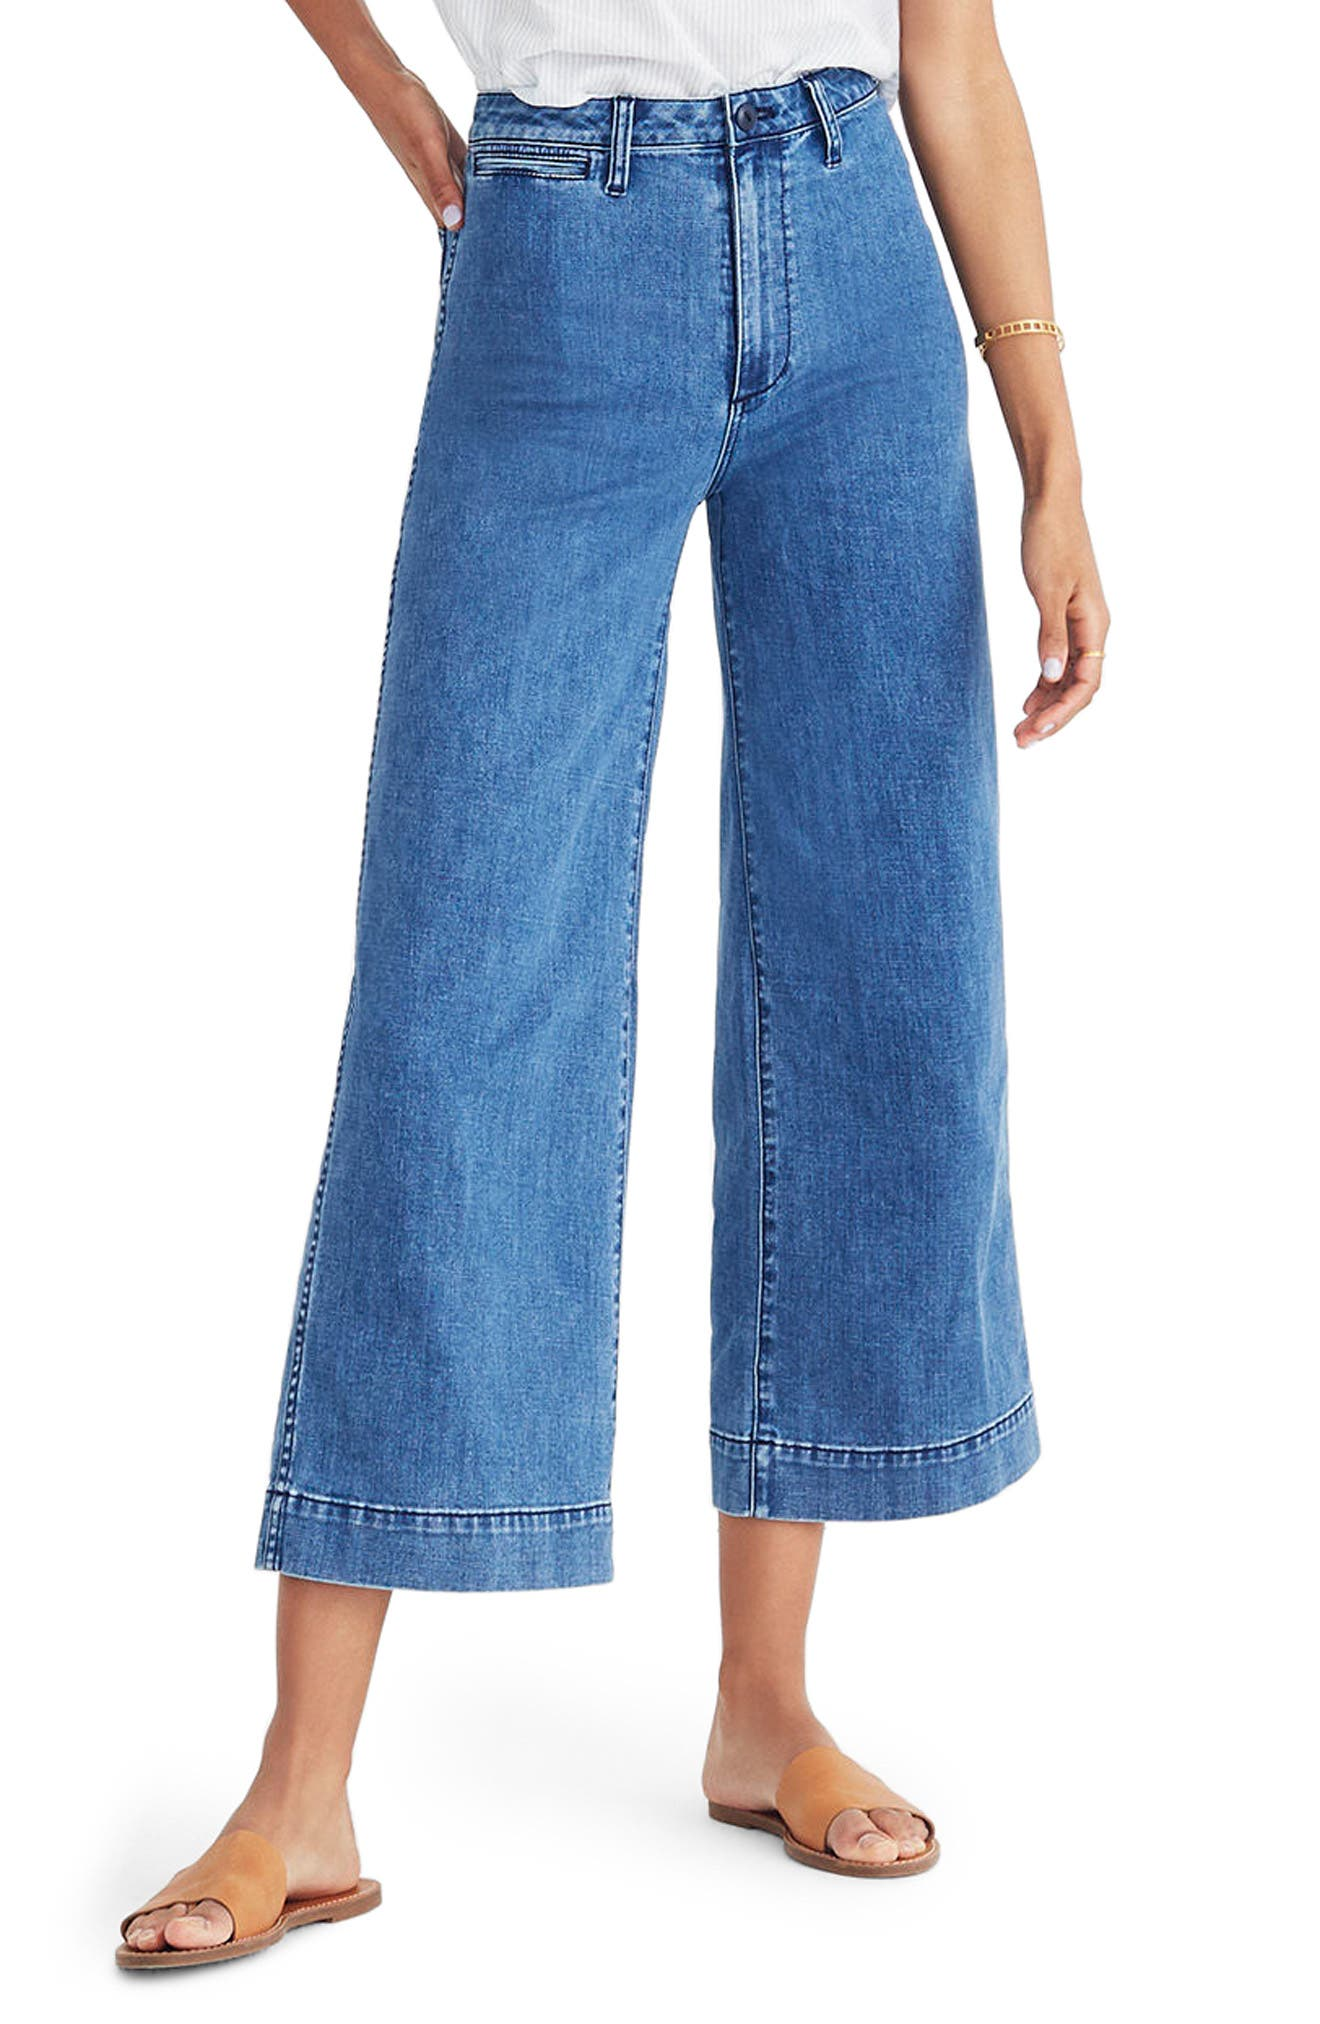 Nordstrom Jeans Cropped Women's Cropped Women's 1q6ISaw7